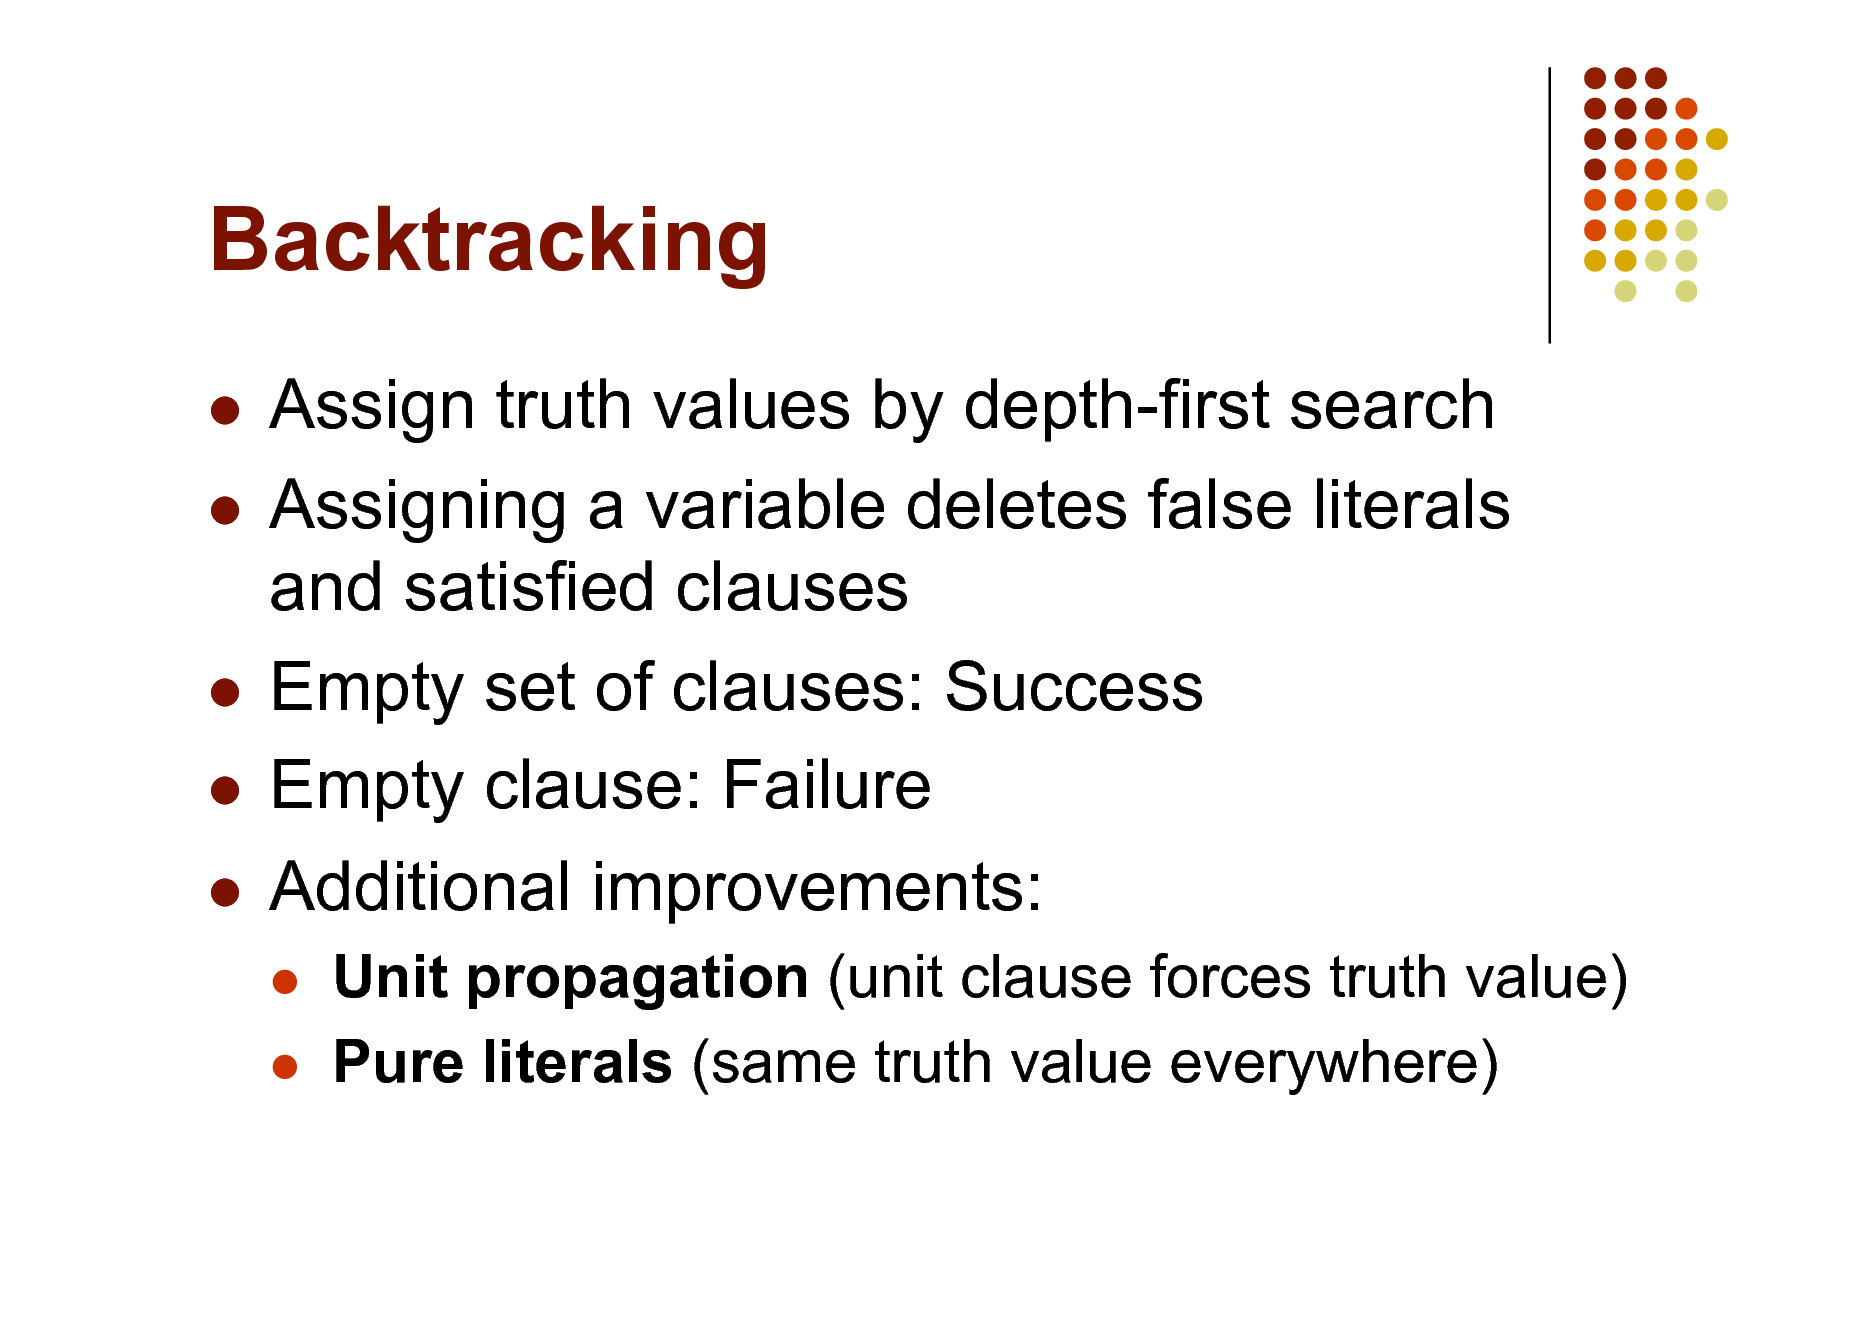 Slide: Backtracking Assign truth values by depth-first search  Assigning a variable deletes false literals and satisfied clauses  Empty set of clauses: Success  Empty clause: Failure  Additional improvements:     Unit propagation (unit clause forces truth value) Pure literals (same truth value everywhere)